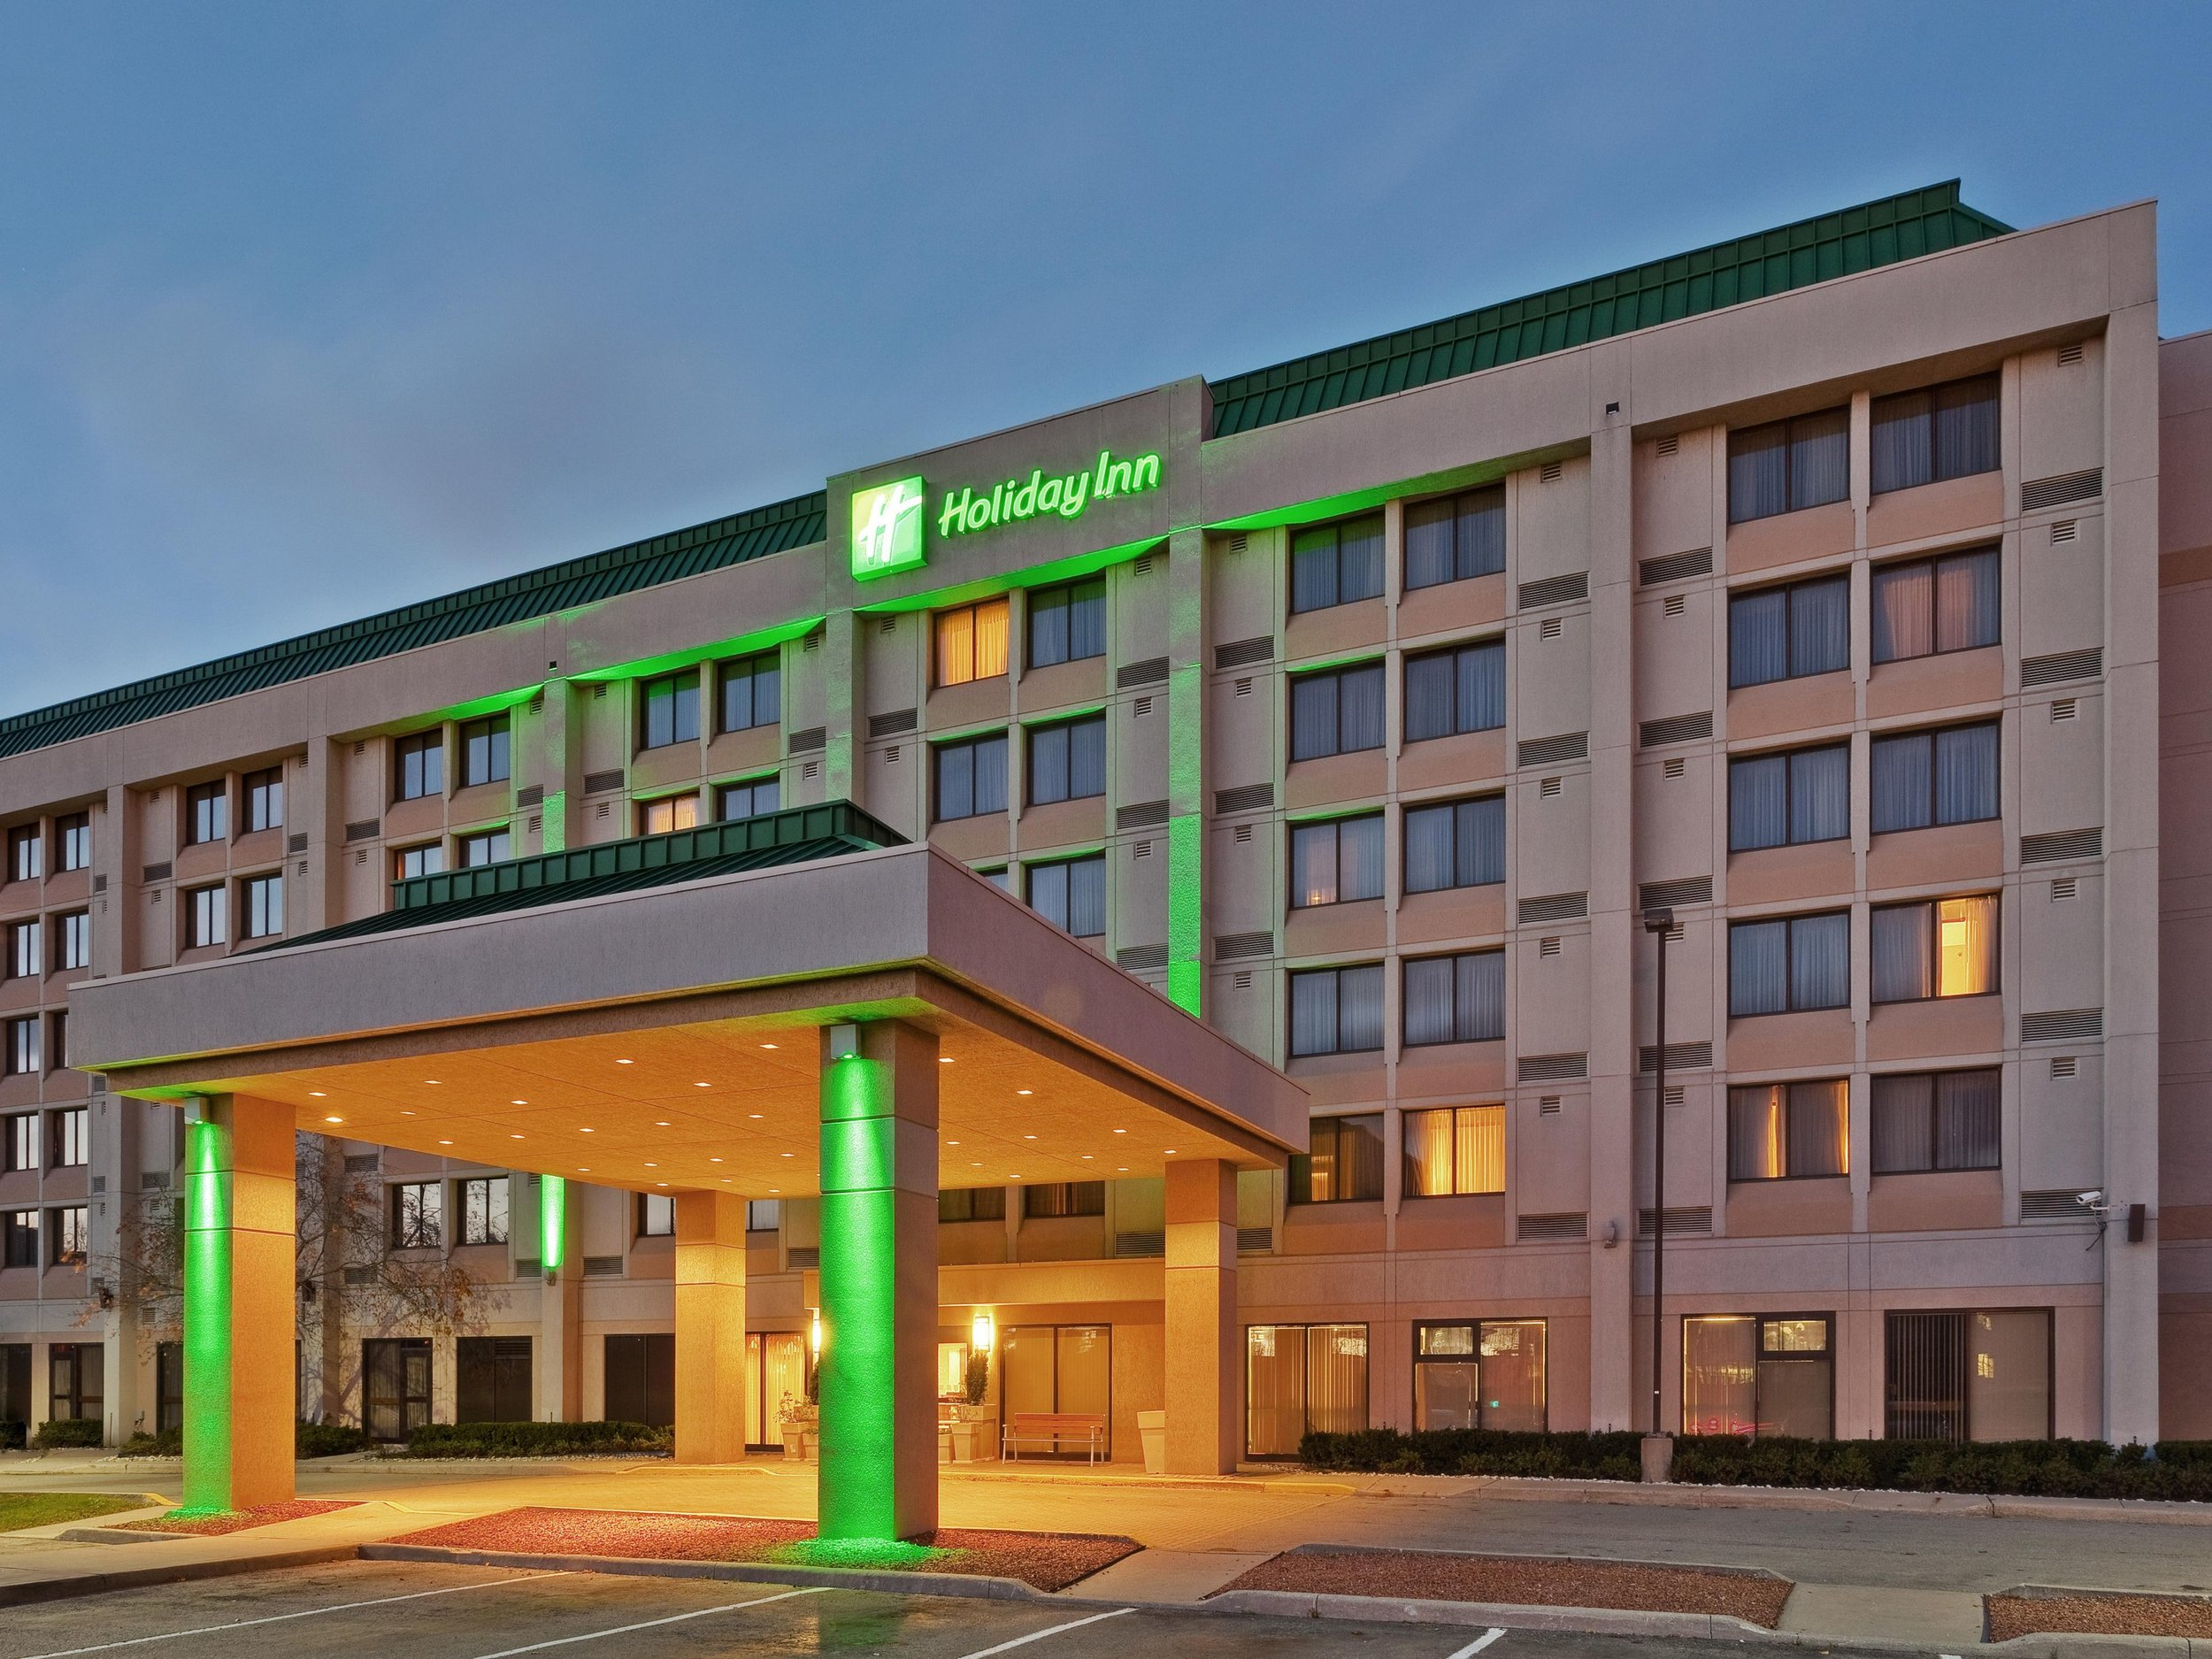 Holiday Inn, North Sheridan Way Mississauga